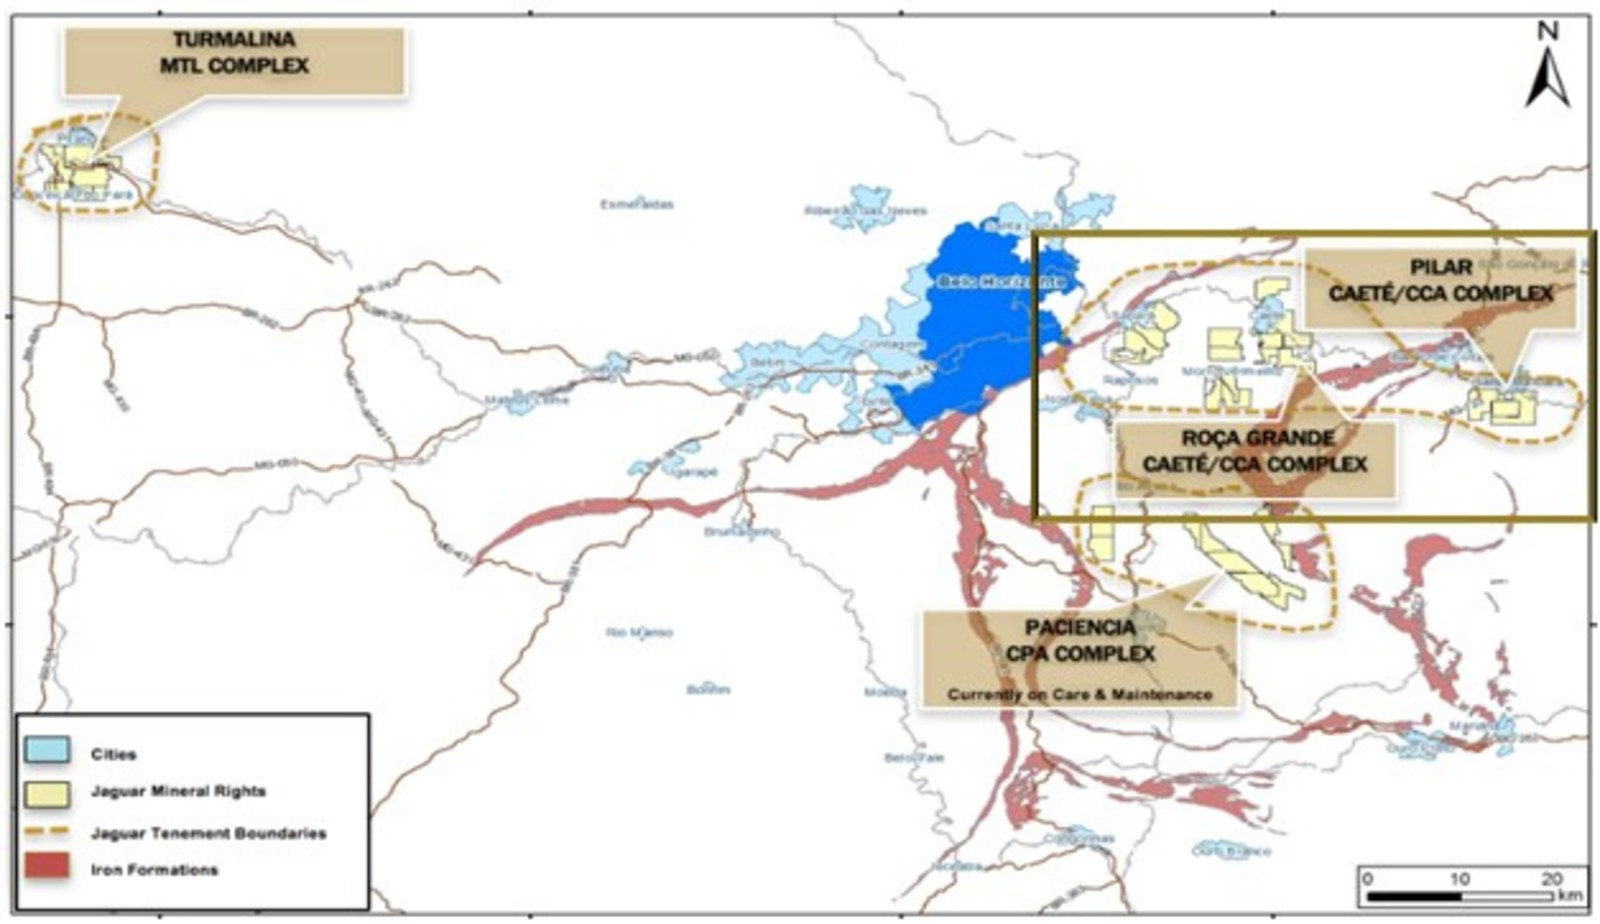 Figure 1: Locations of Jaguar´s Mining and Mineral Rights